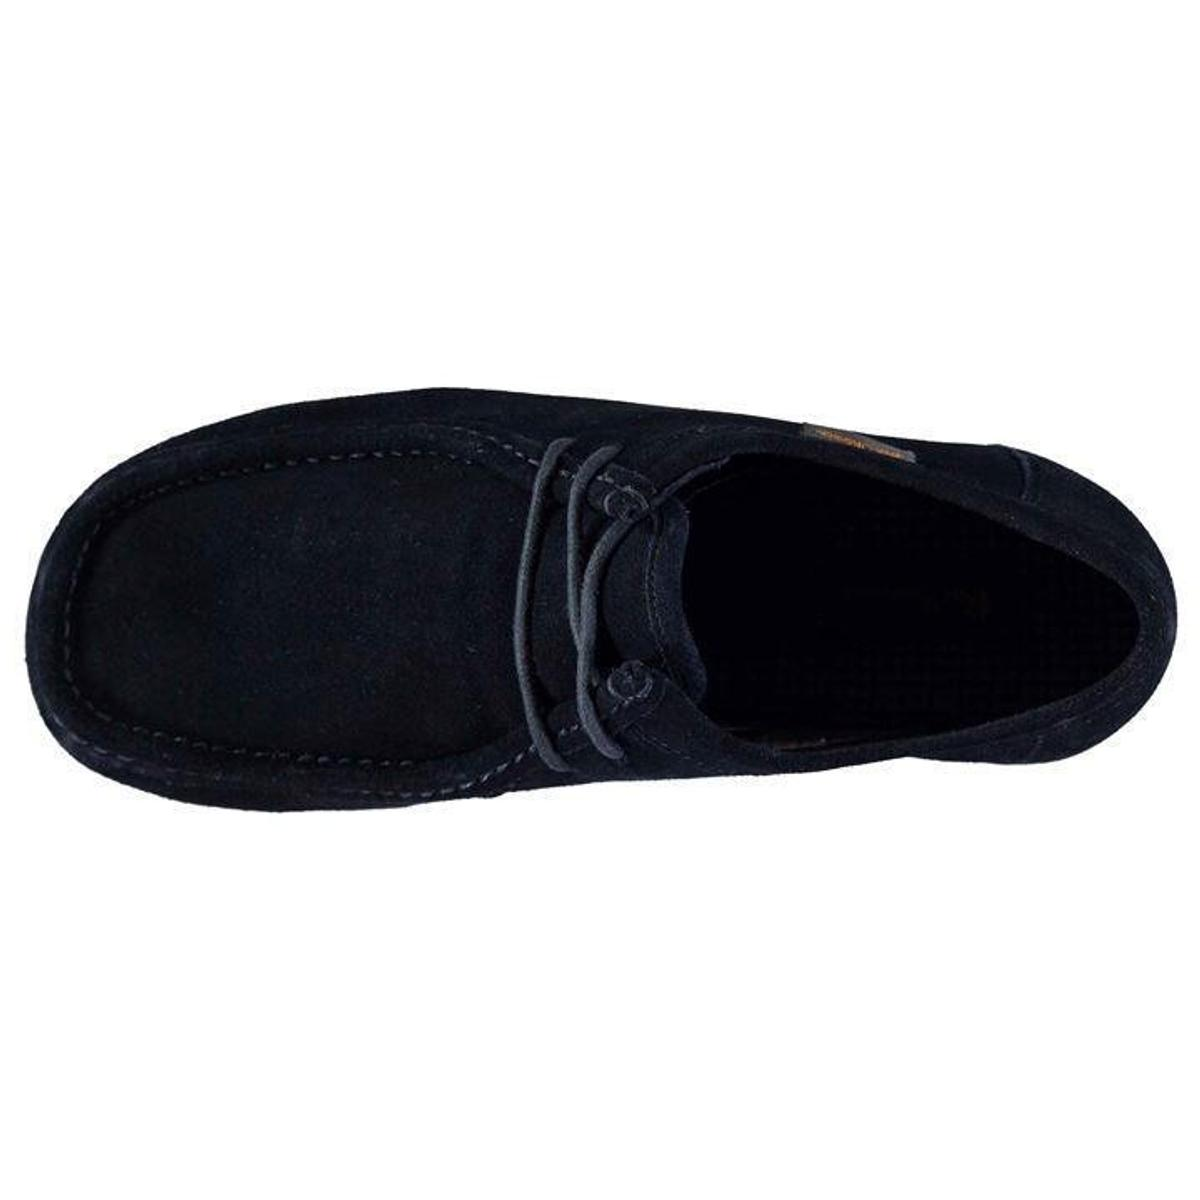 3add7b27c3 BEN SHERMAN QUAD WALLABEE SHOES-SIZE 10 in IG11 Dagenham for £32.00 for  sale - Shpock